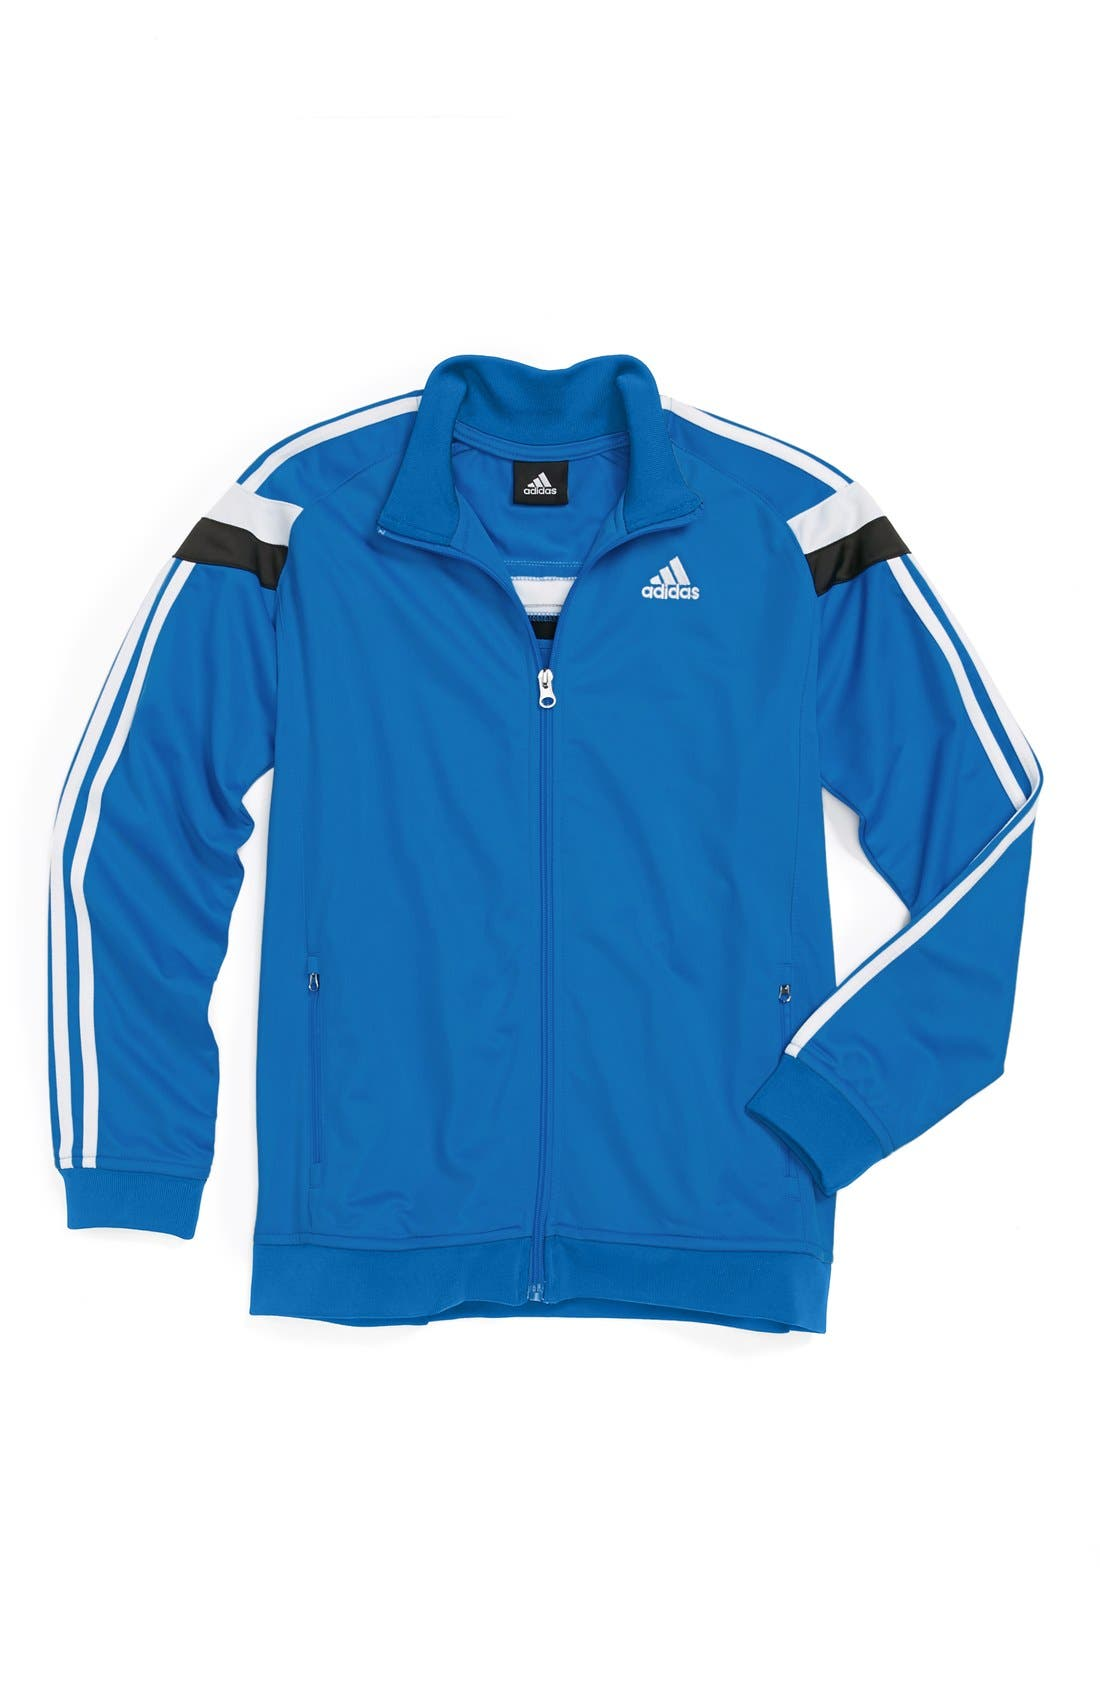 Main Image - adidas 'Anthem' Jacket (Big Boys)